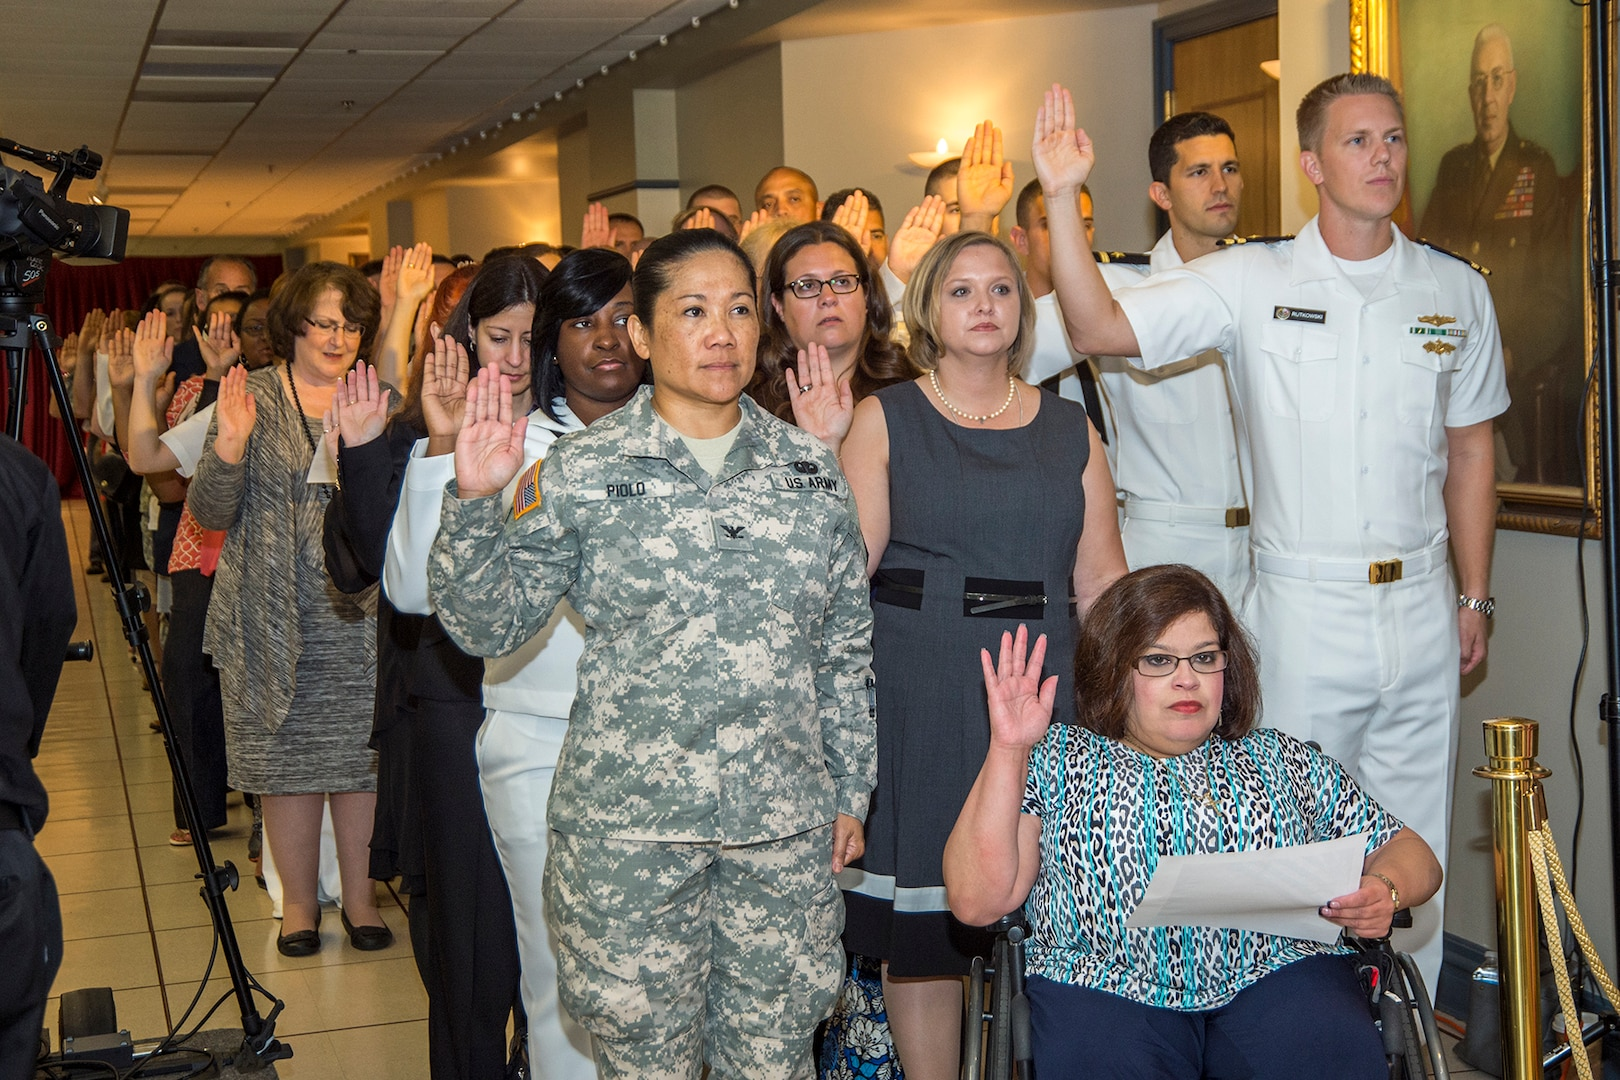 Members of the NSA/CSS workforce recite the Oath of Office on Patriot Day, September 11, 2015.